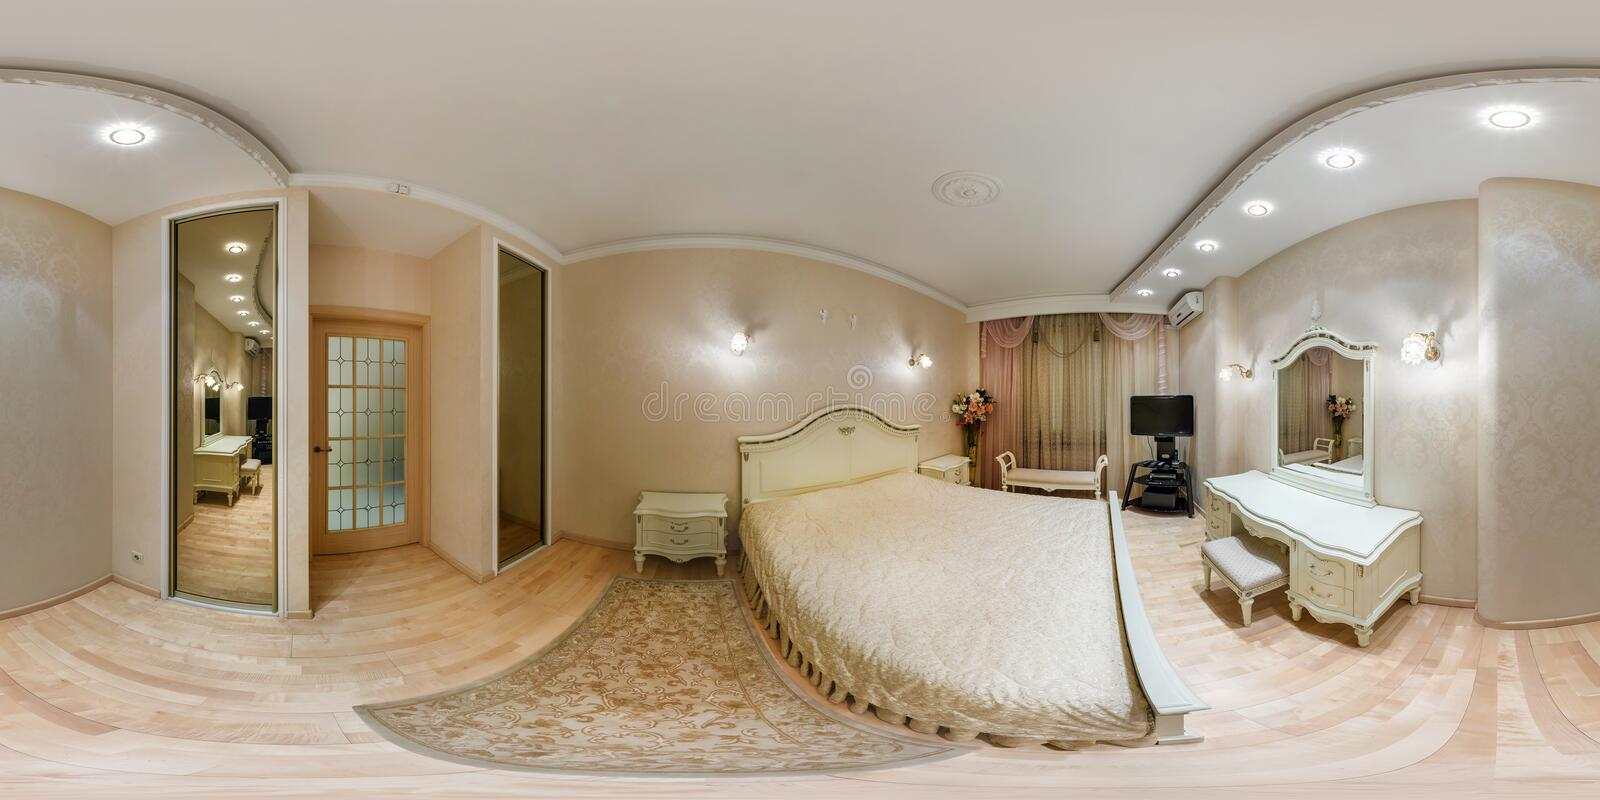 MINSK, BELARUS - MARCH 20, 2014: Full spherical 360 degrees seamless panorama in equirectangular equidistant projection, panorama. In interior bedroom in modern stock photo